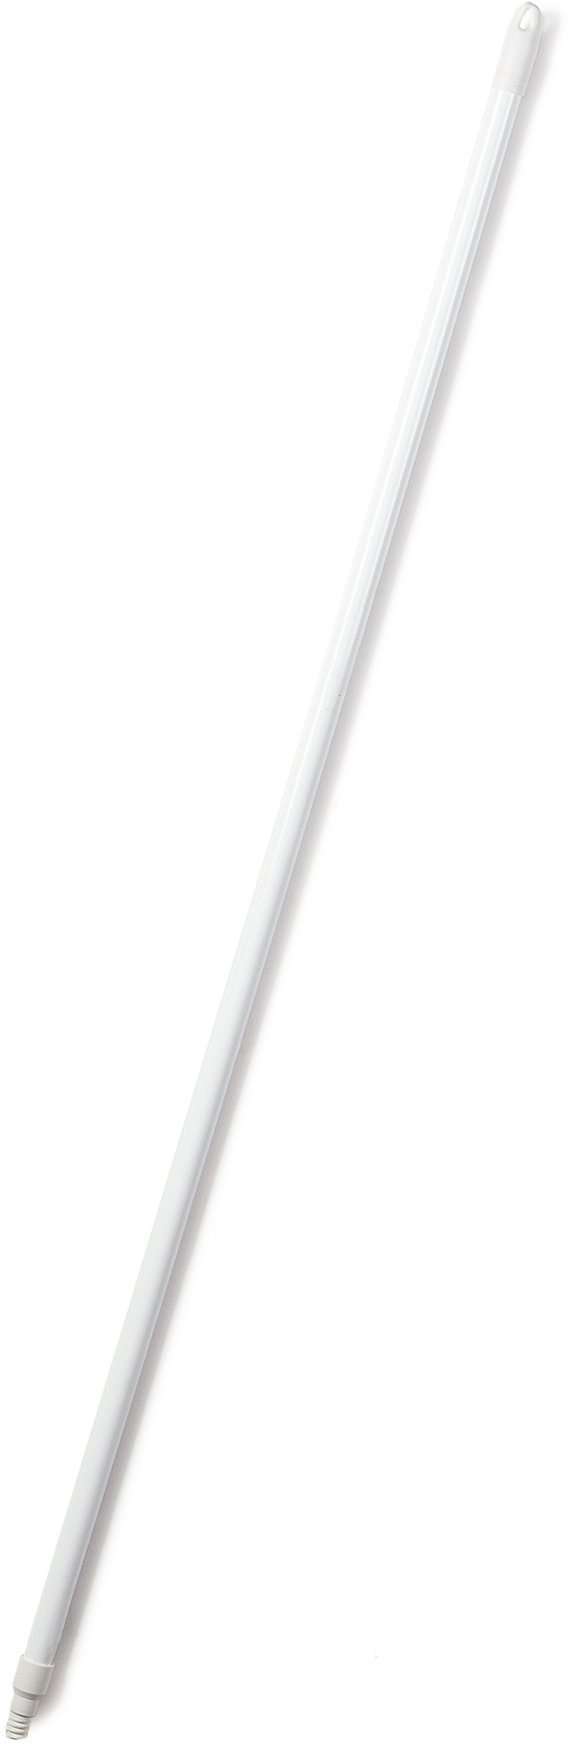 Carlisle 4122600 Sparta Spectrum 1'' Diameter Handle with Flex Tip, 1'' Height, 1'' Width, 72'' Length, Fiberglass (Pack of 12) by Carlisle